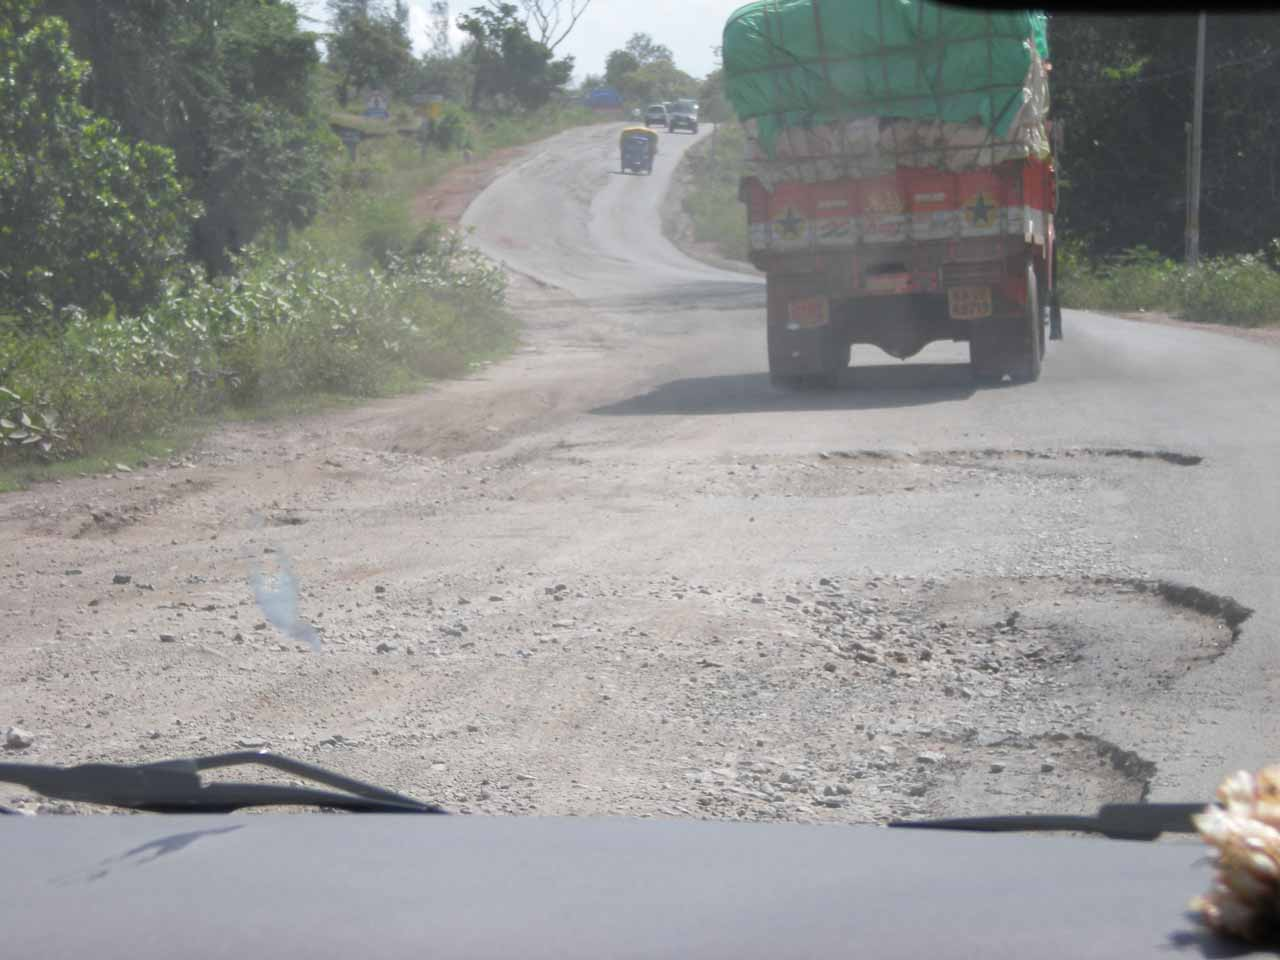 More beat up roads on the road from Mangalore to Murudeshwar